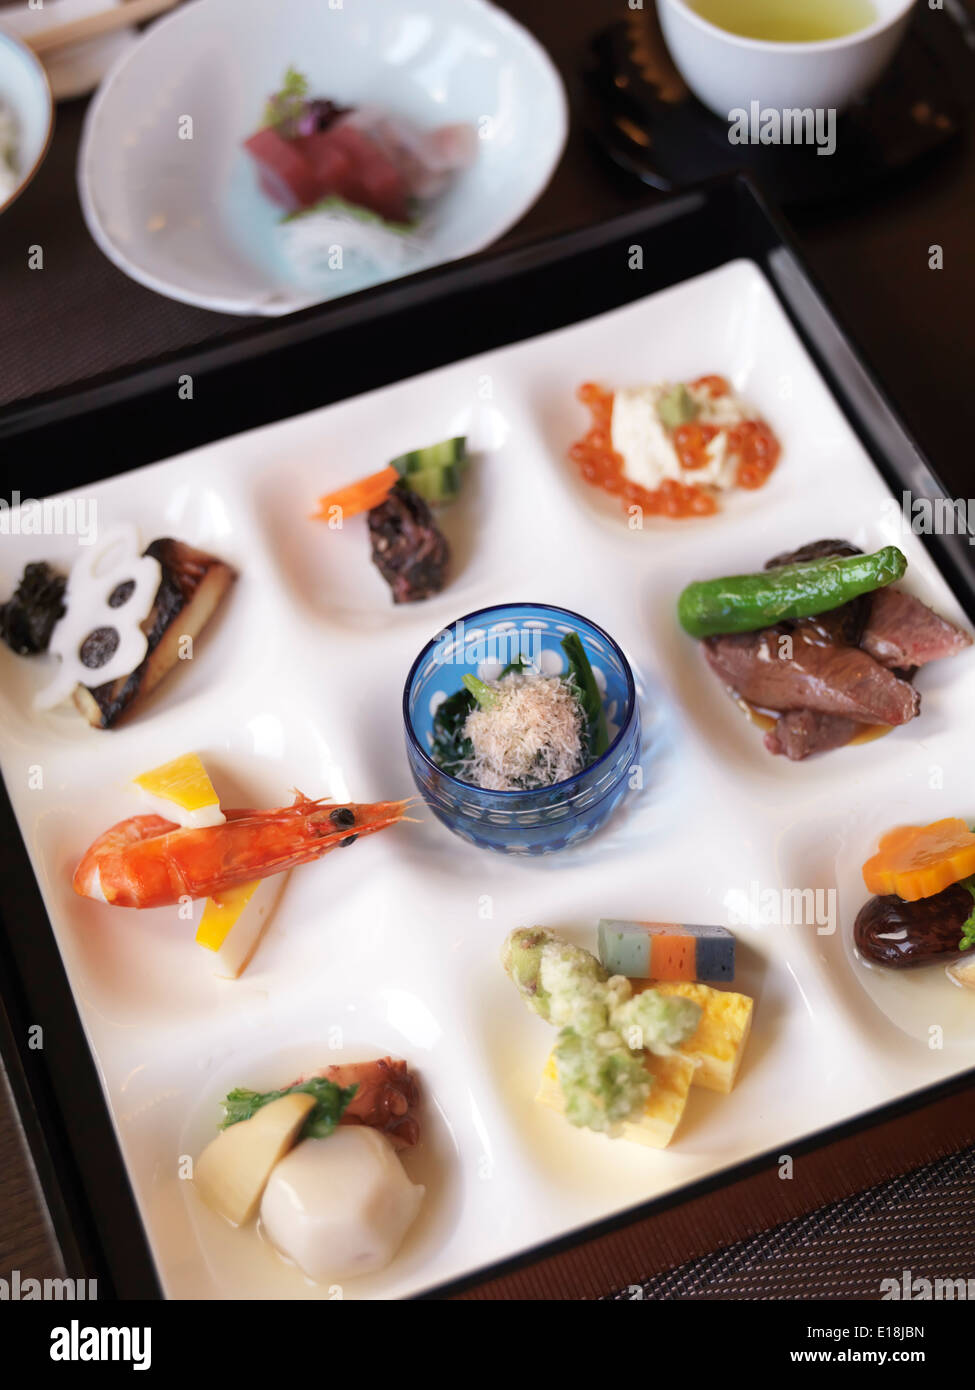 Closeup of a meal served at a Japanese high-end sushi restaurant. Ginza, Tokyo, Japan. - Stock Image